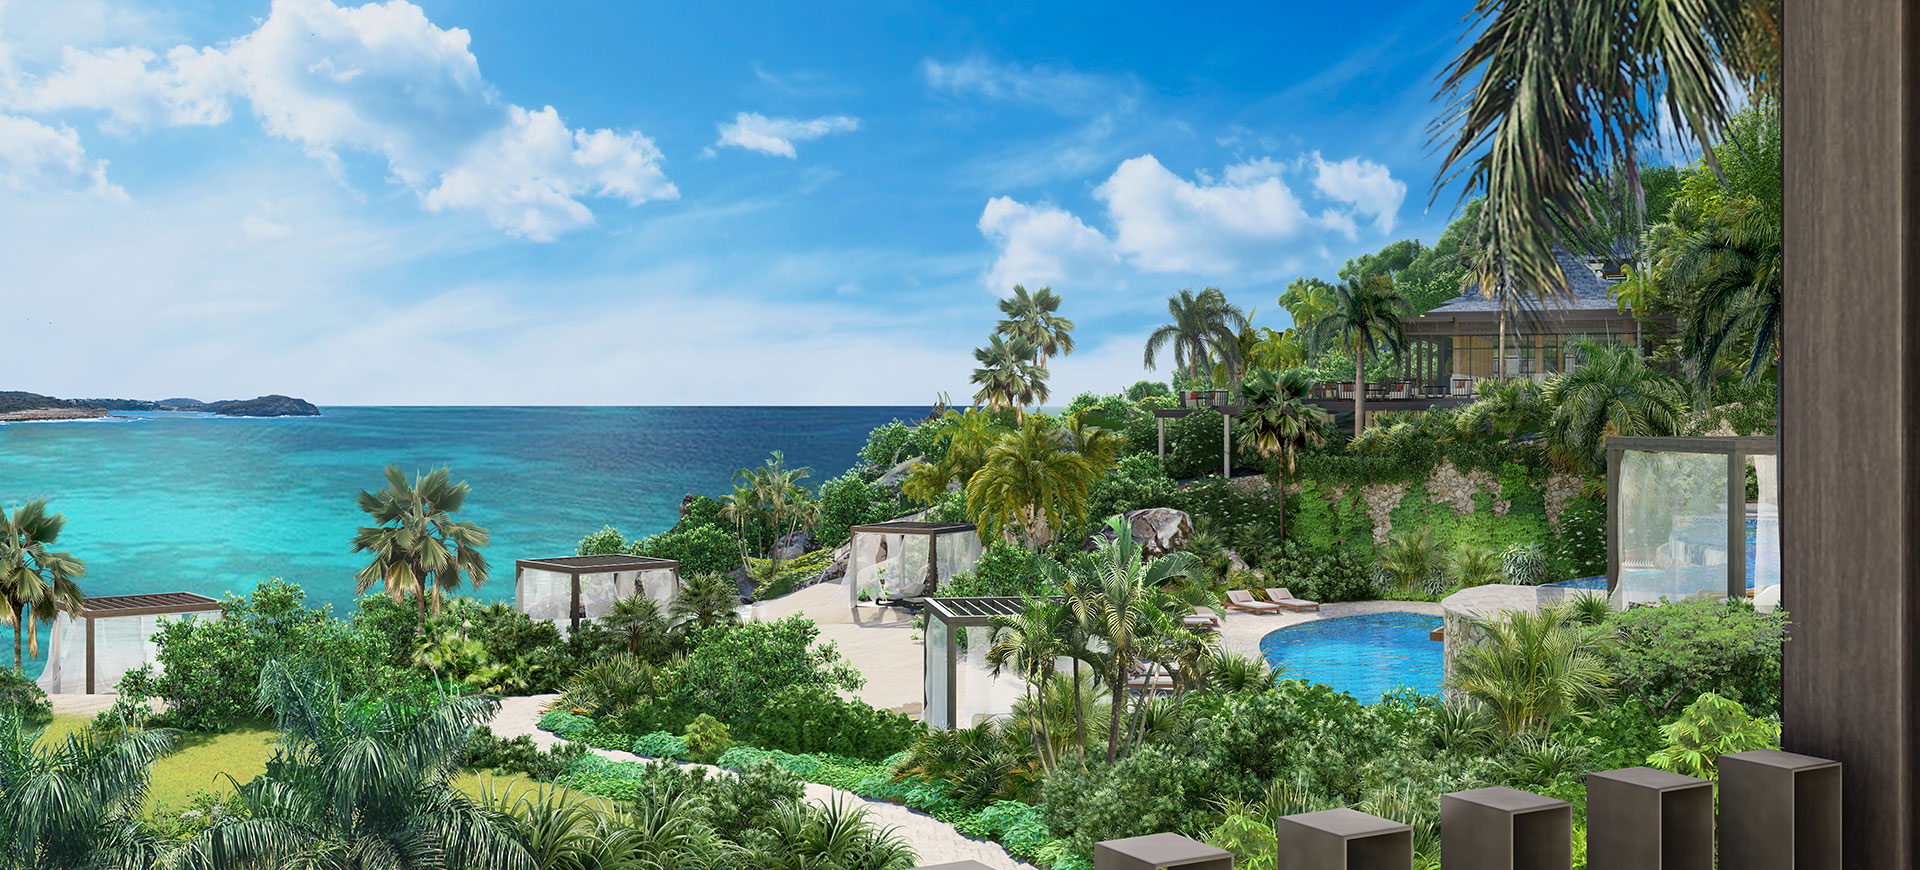 The Caribbean Is Rife with Luxury Real Estate. Here's Where to Buy It